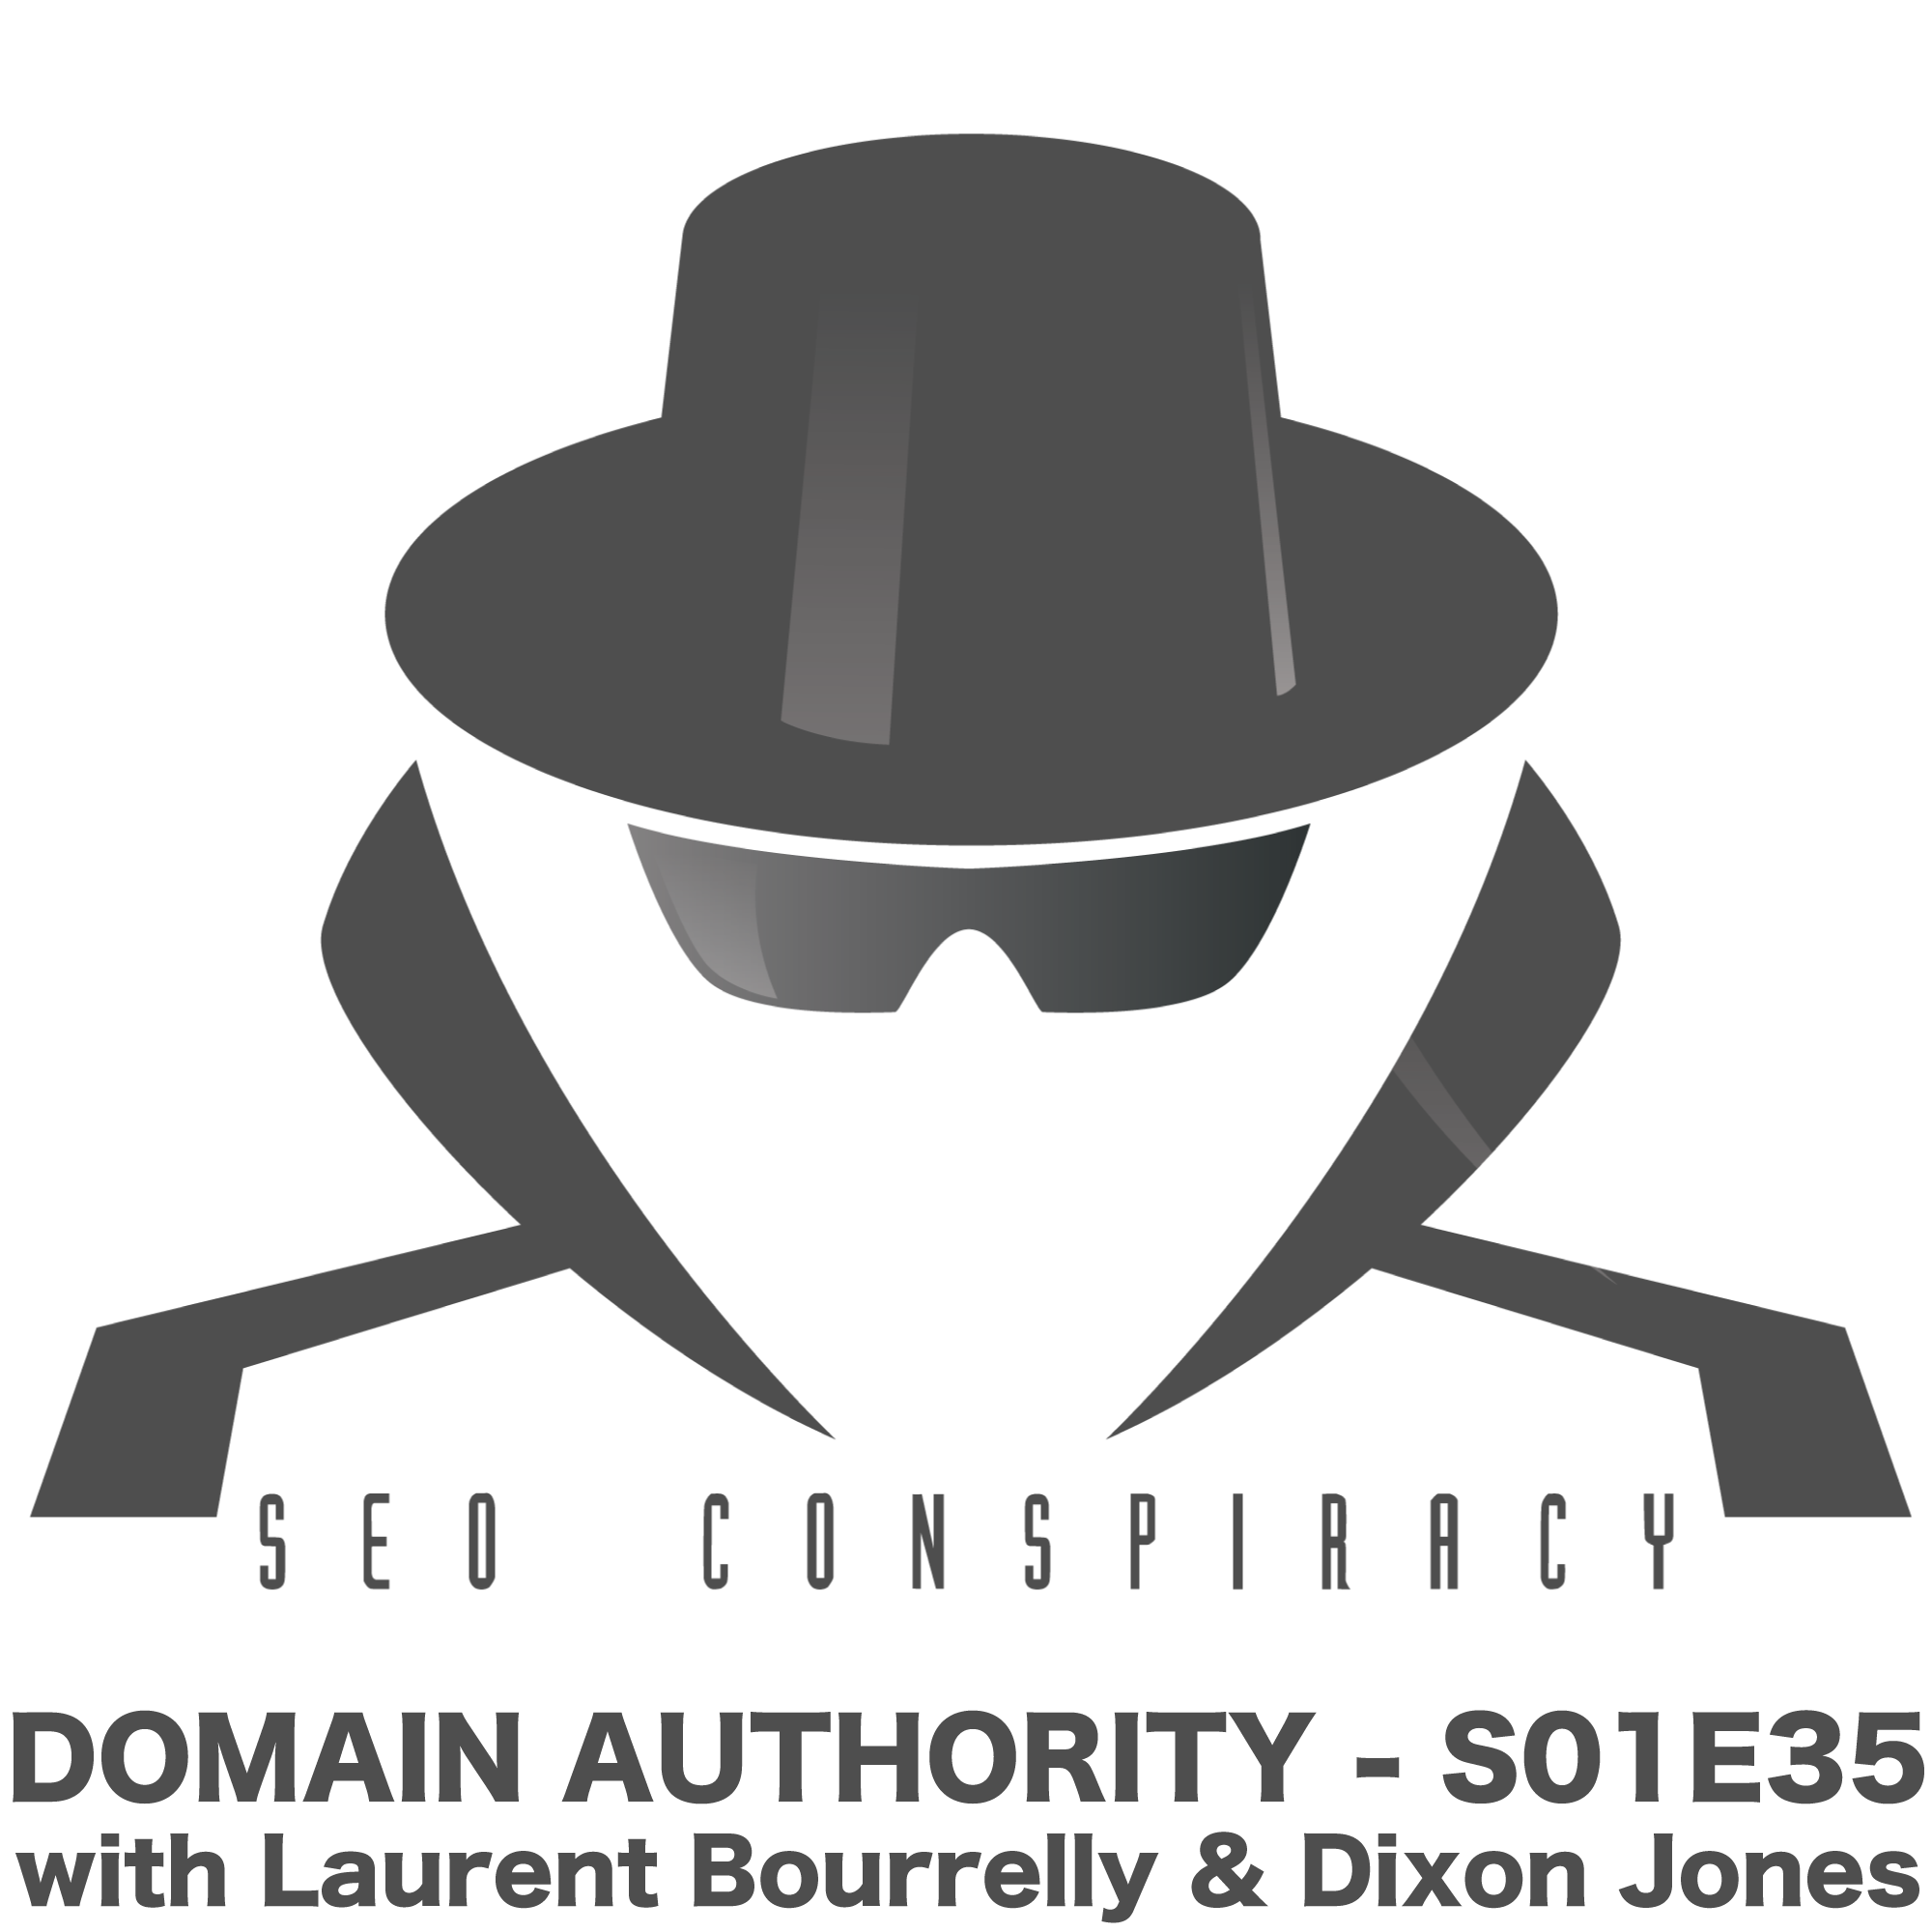 Domain Authority in SEO is a BAD idea - S01E35